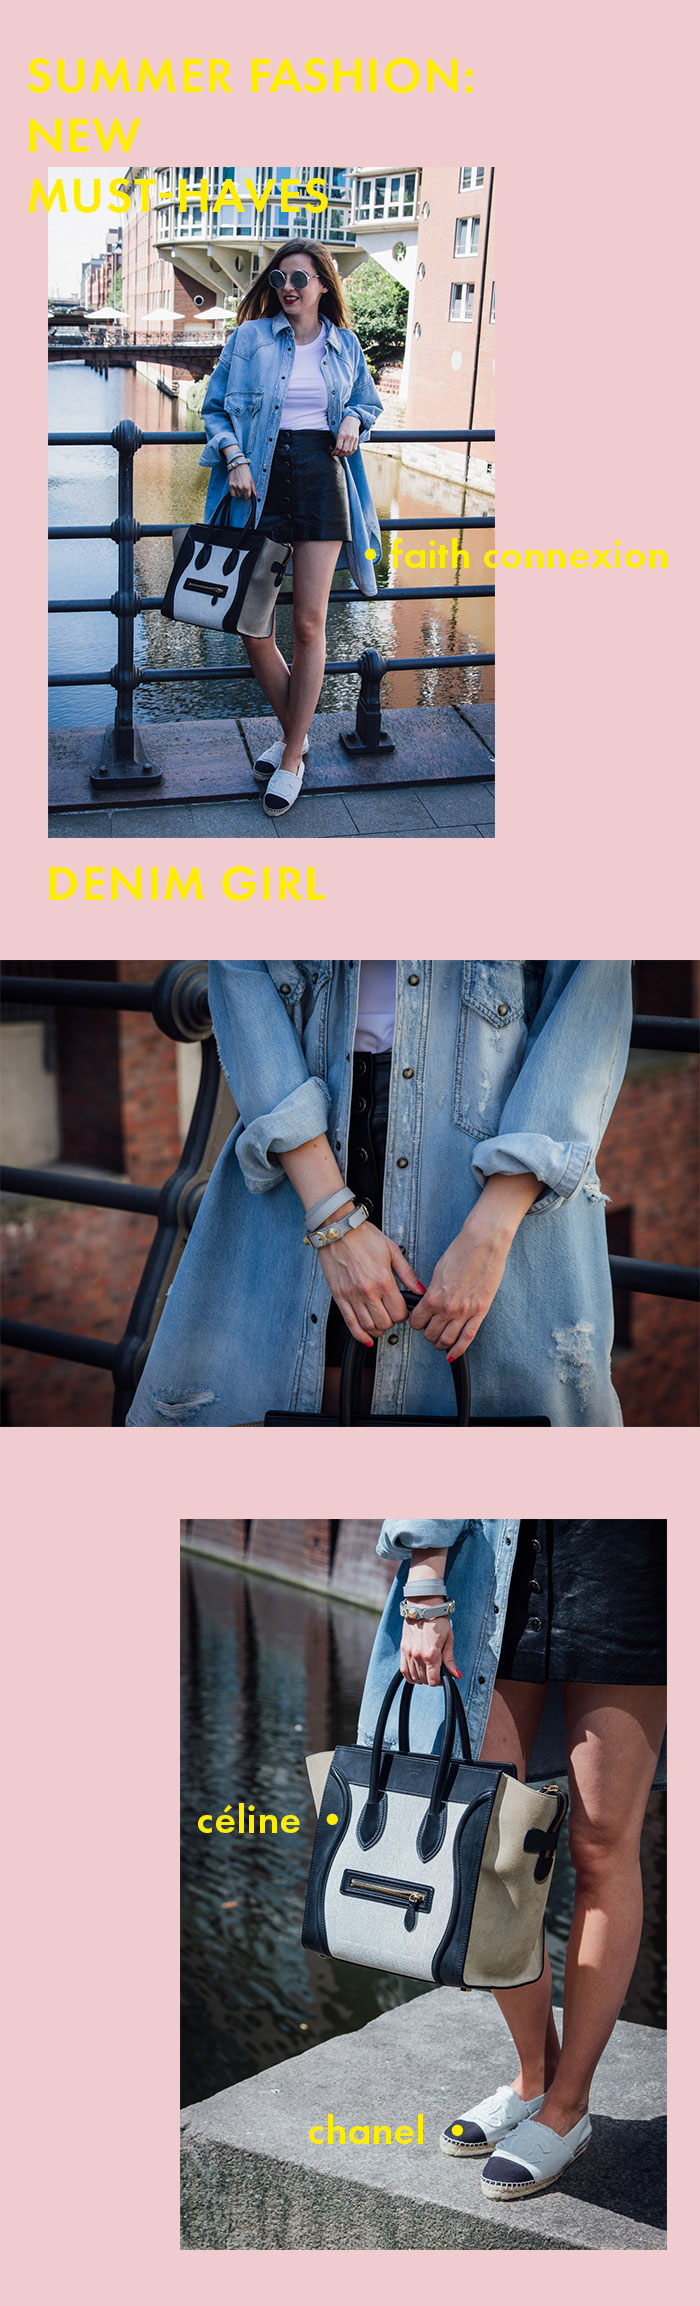 Summer Fashion 2018: Denim Girl